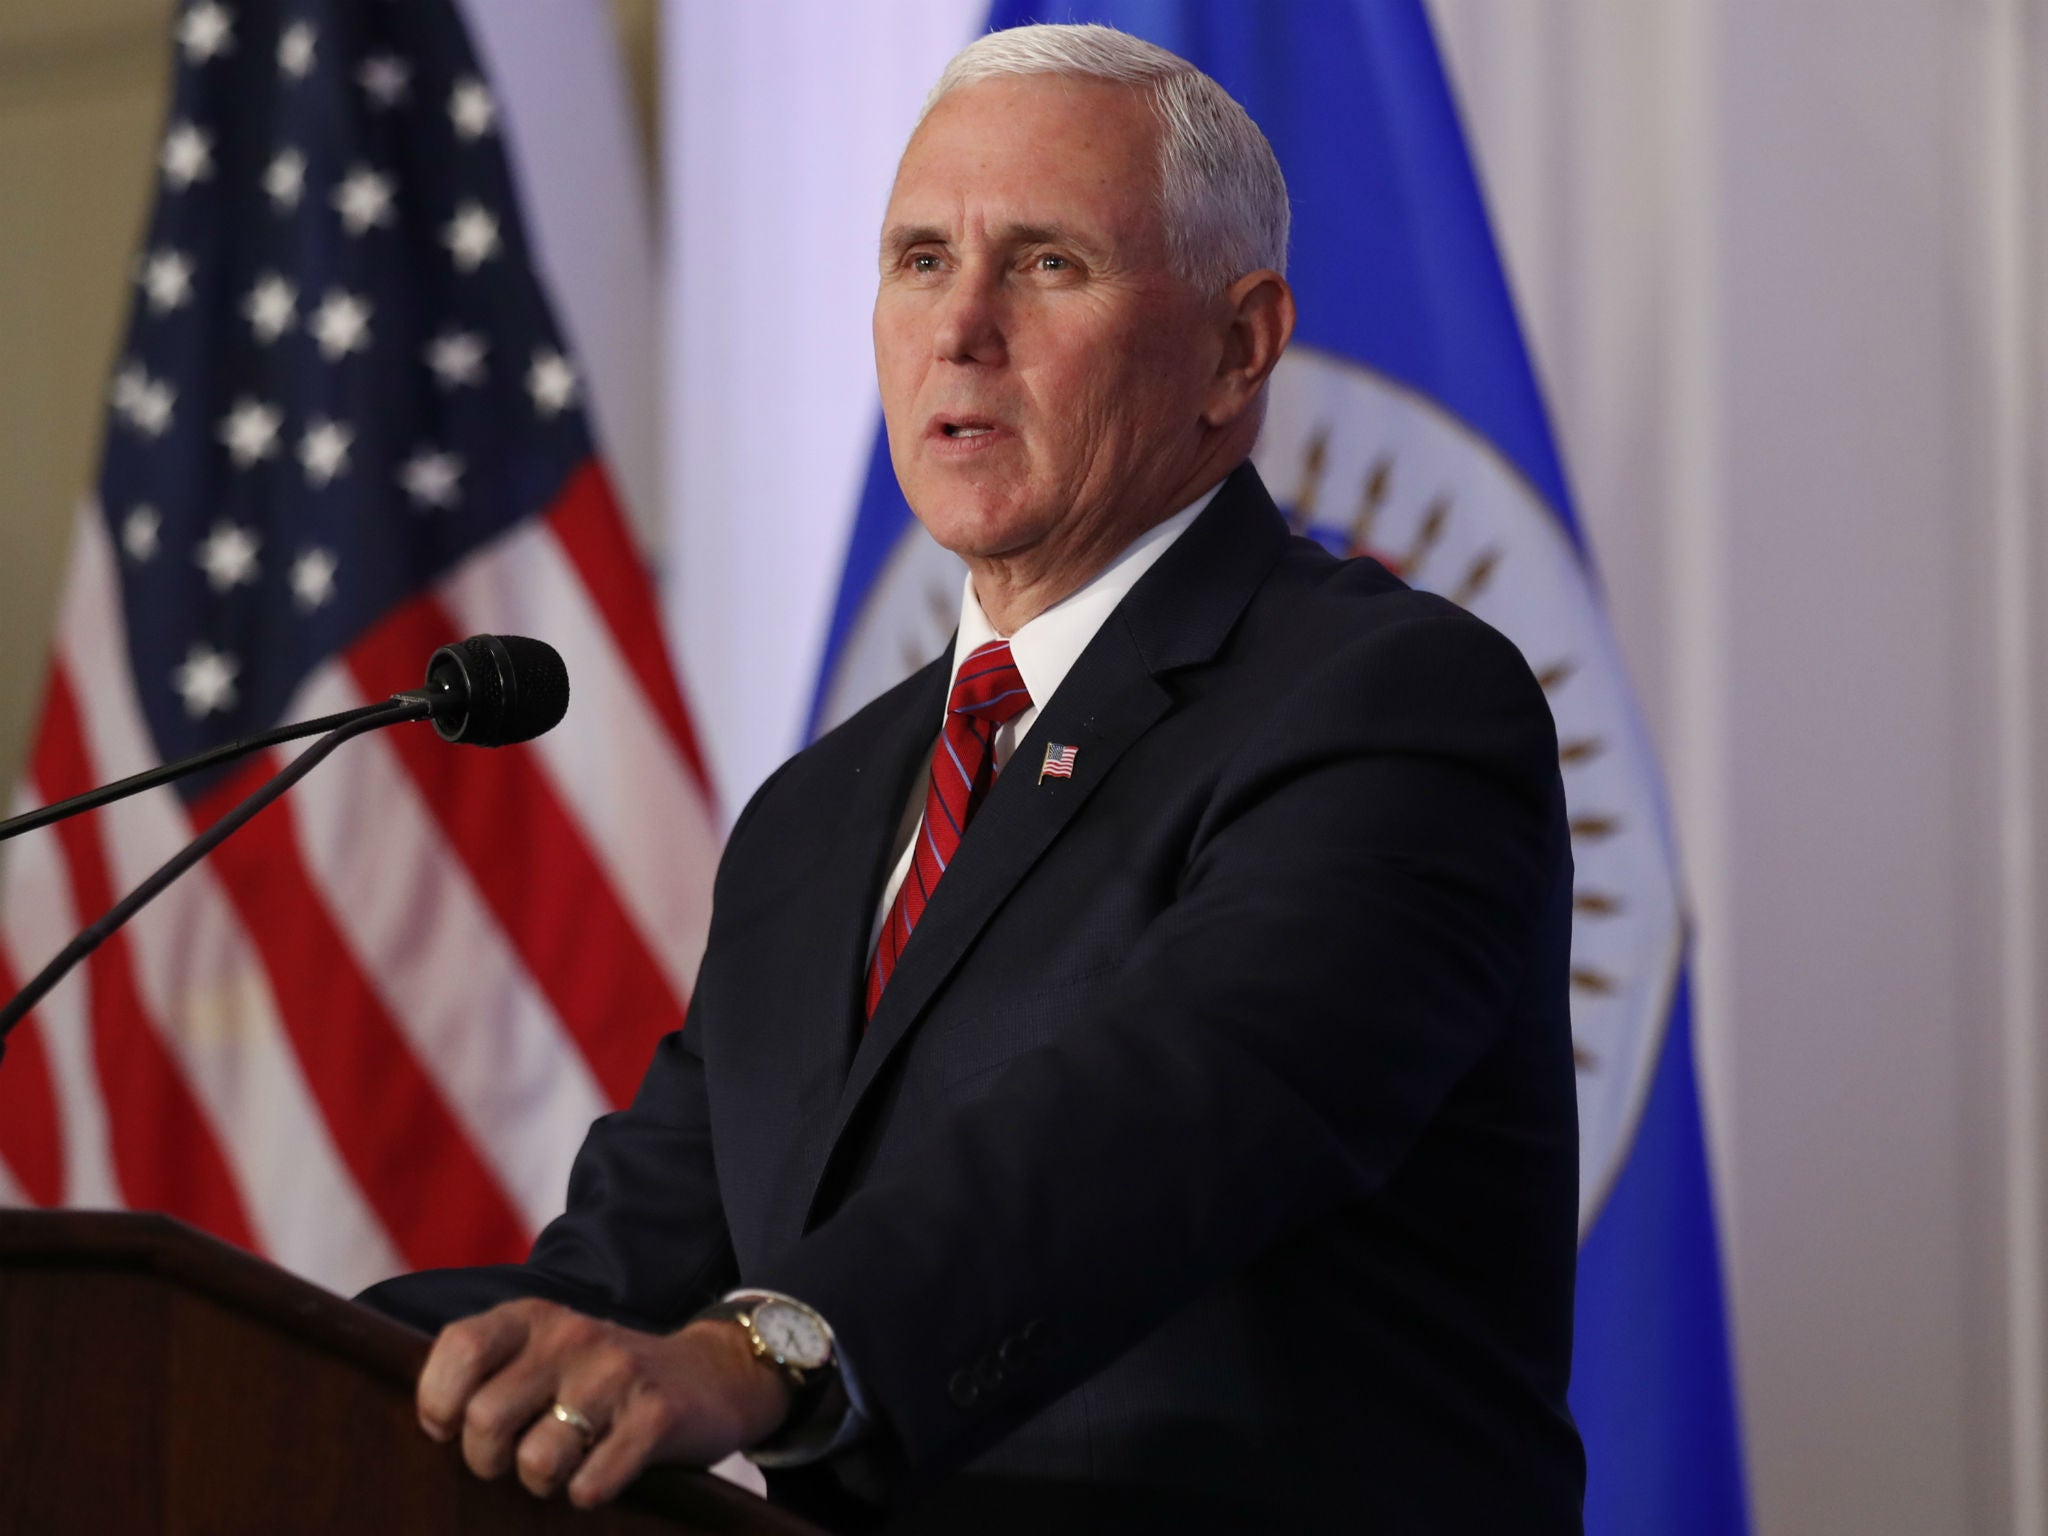 Mike Pence to be met with 'big gay dance party' during Ohio visit